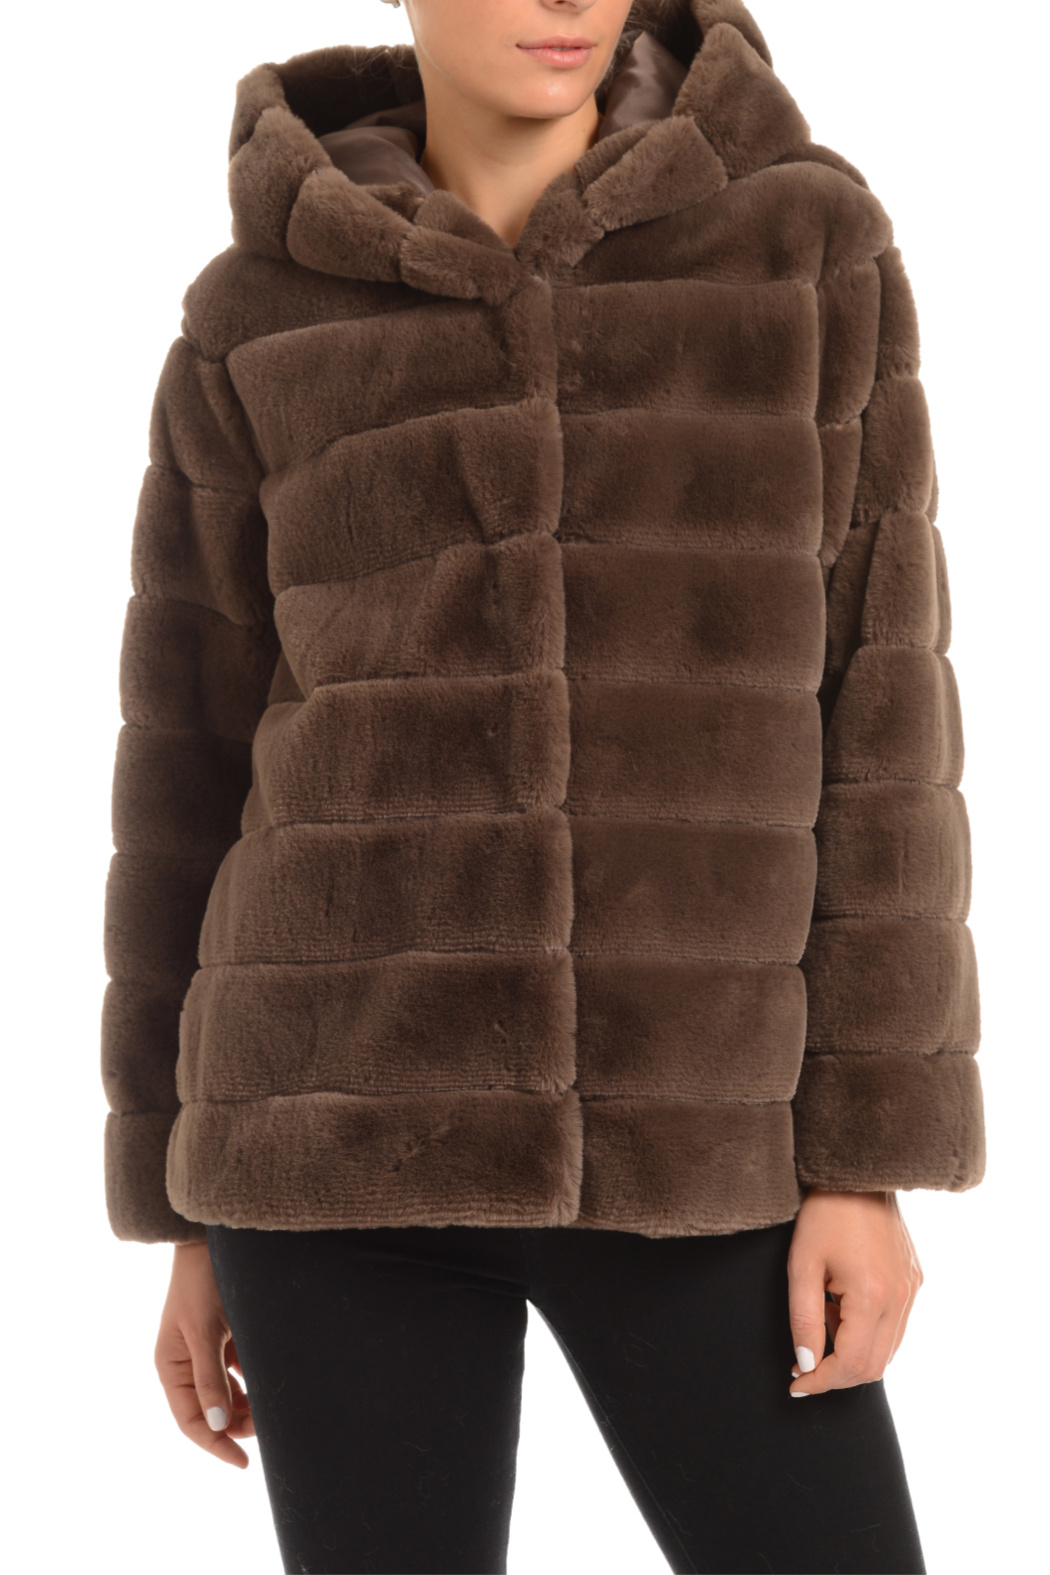 Patty Kim Hooded Lux Faux Fur Coat - Main Image